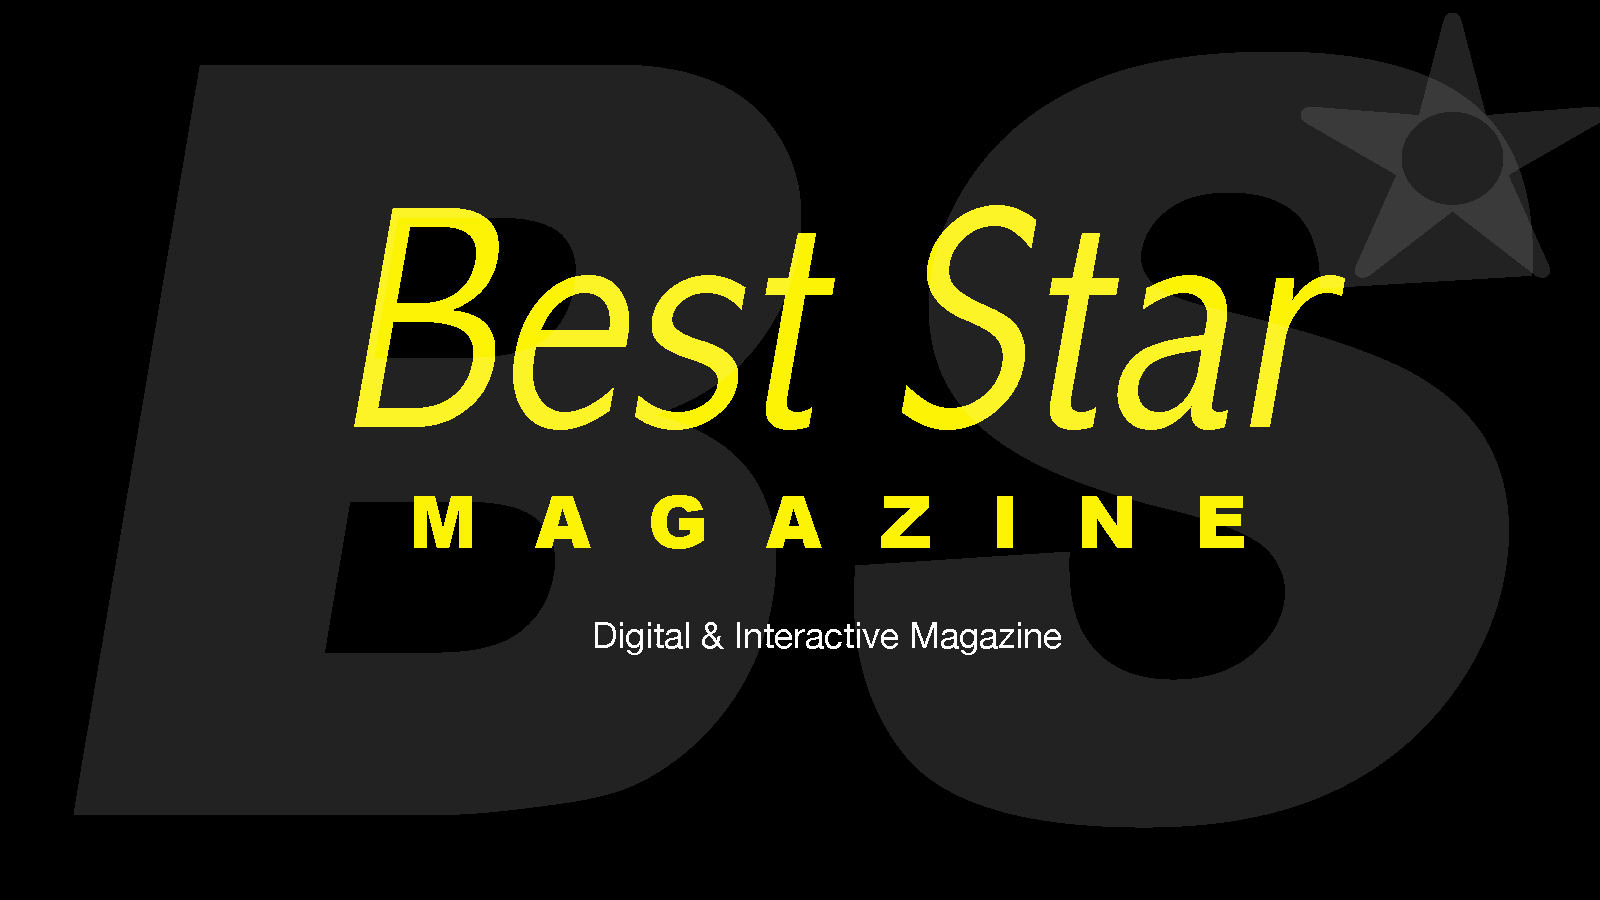 BEST STAR digital zine